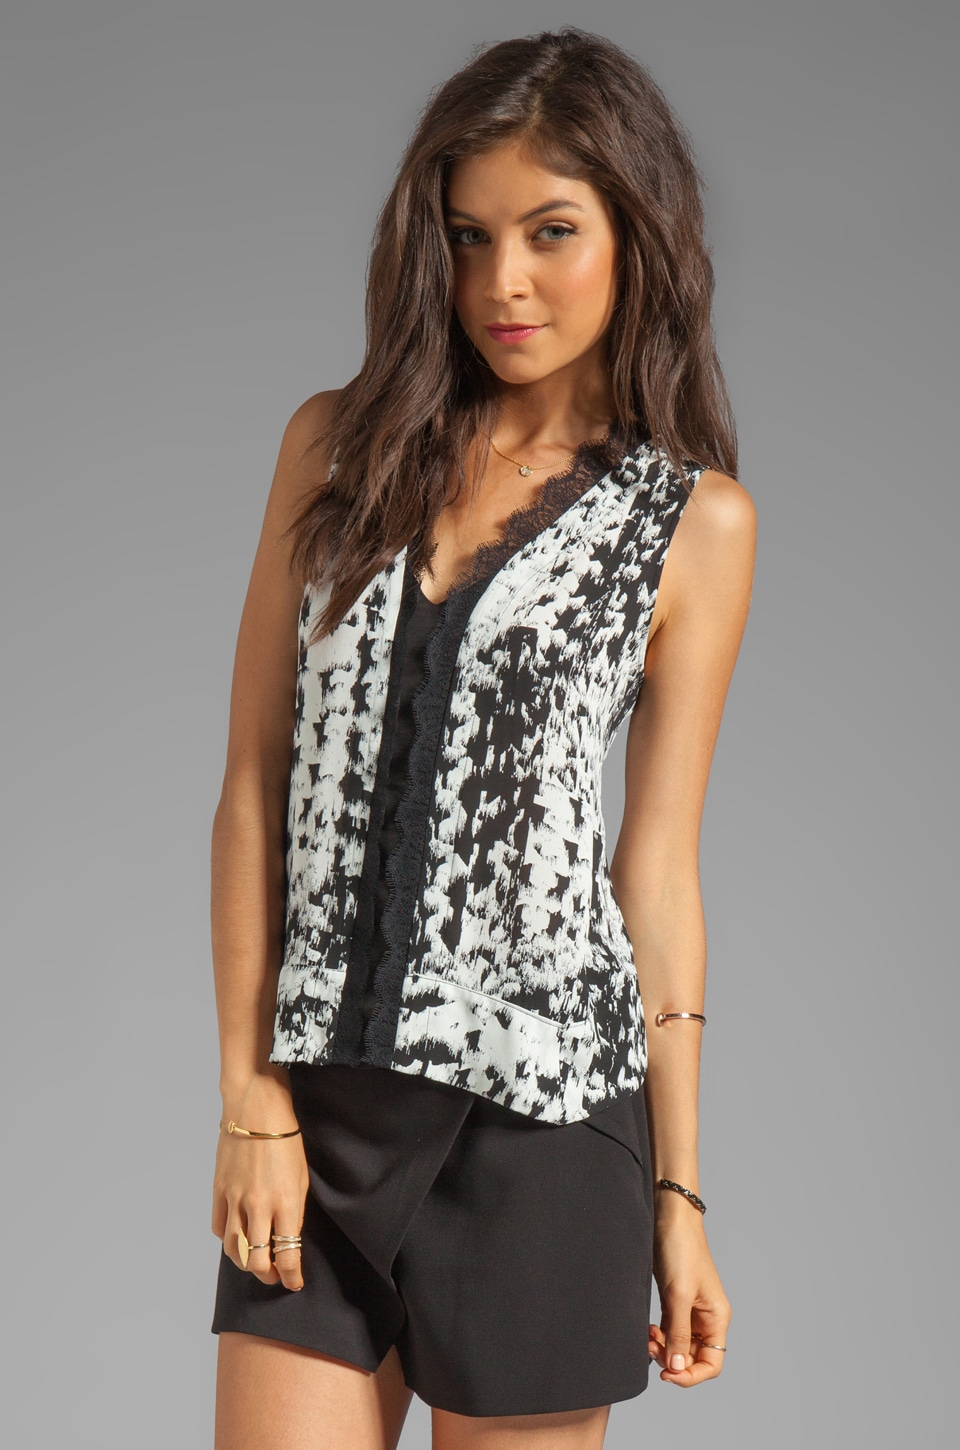 BCBGMAXAZRIA Printed V Neck Sleeveless Top in Black Combo